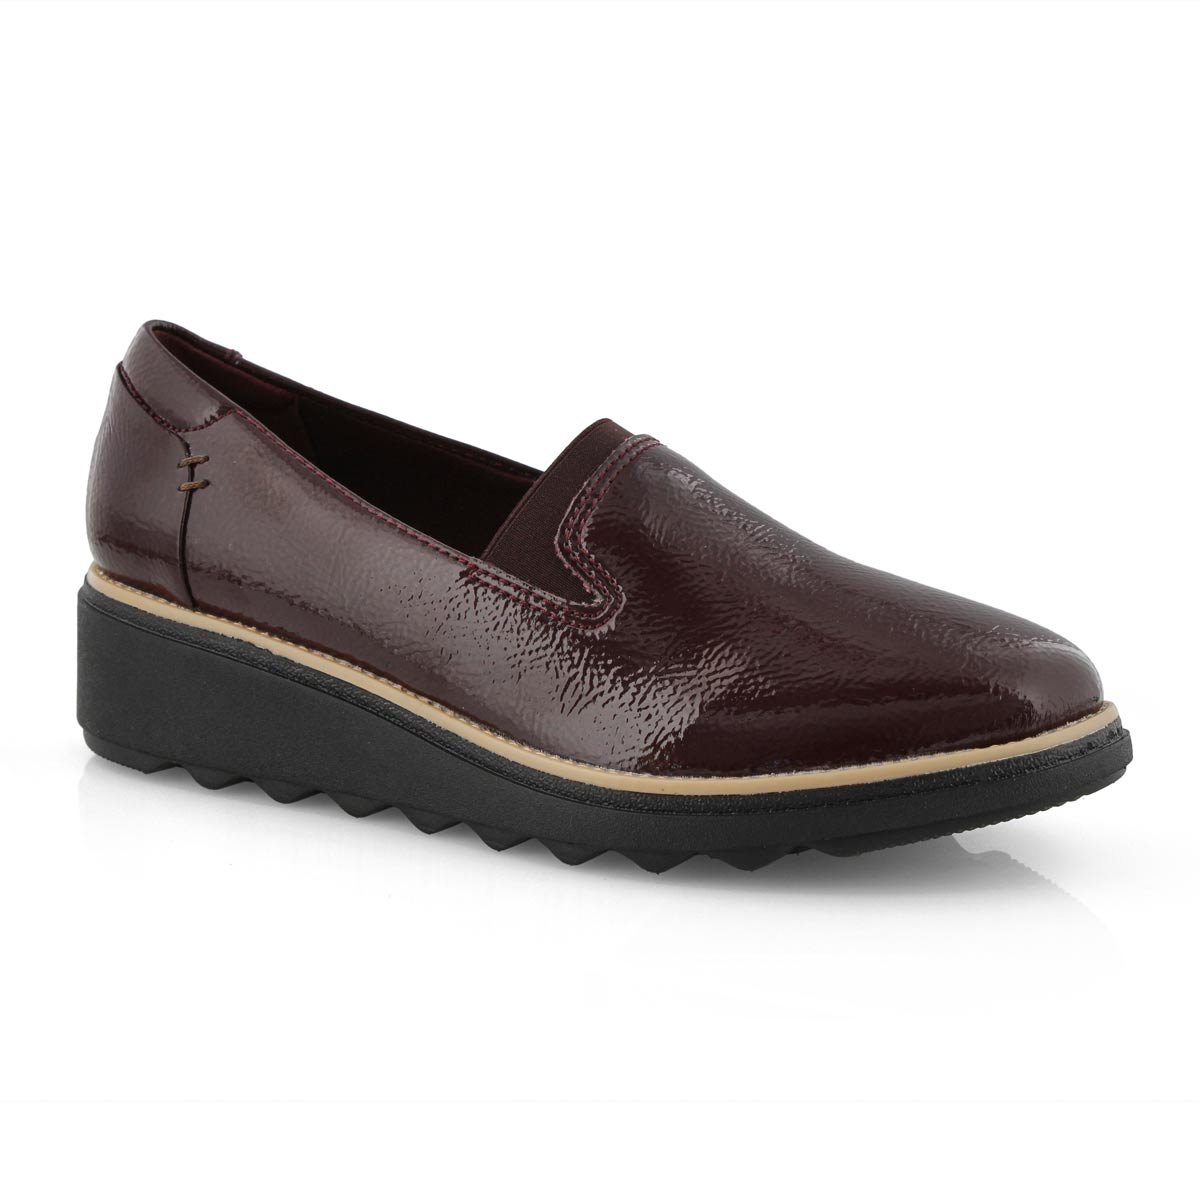 Lds Sharon Dolly burgundy casual loafer